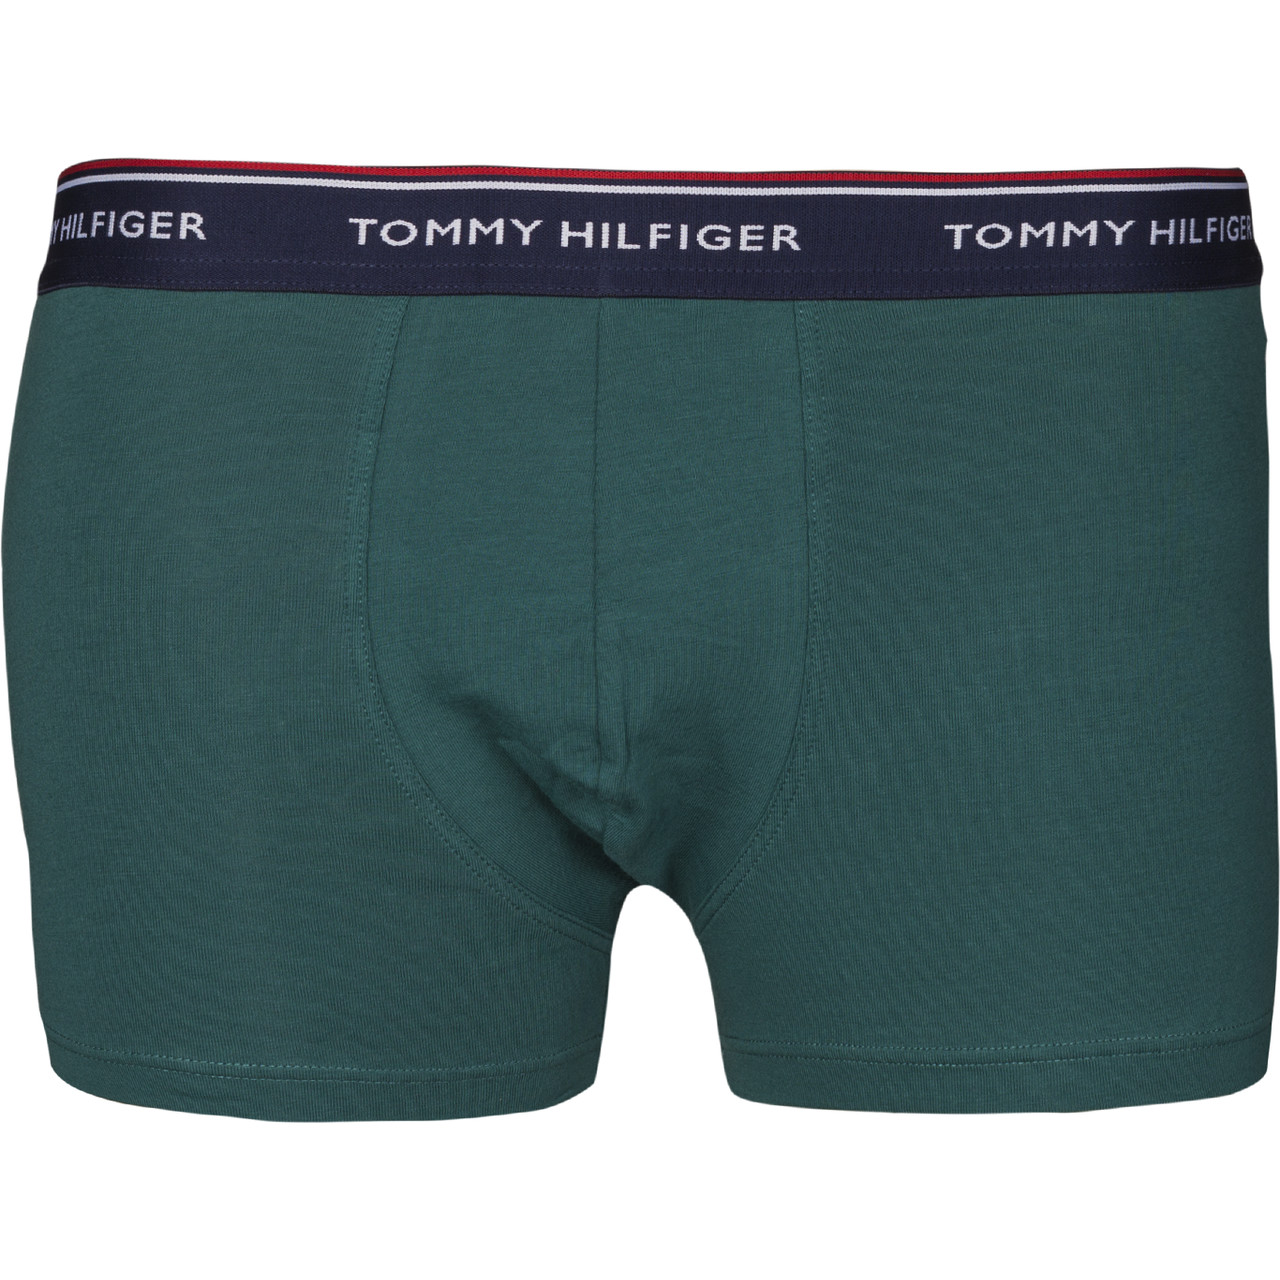 Bokserki 3Pack Tommy Hilfiger  <br/><small>TRUNK 685 ANEMONE/BAYBERRY/PEACOAT </small>  1U87903842-685